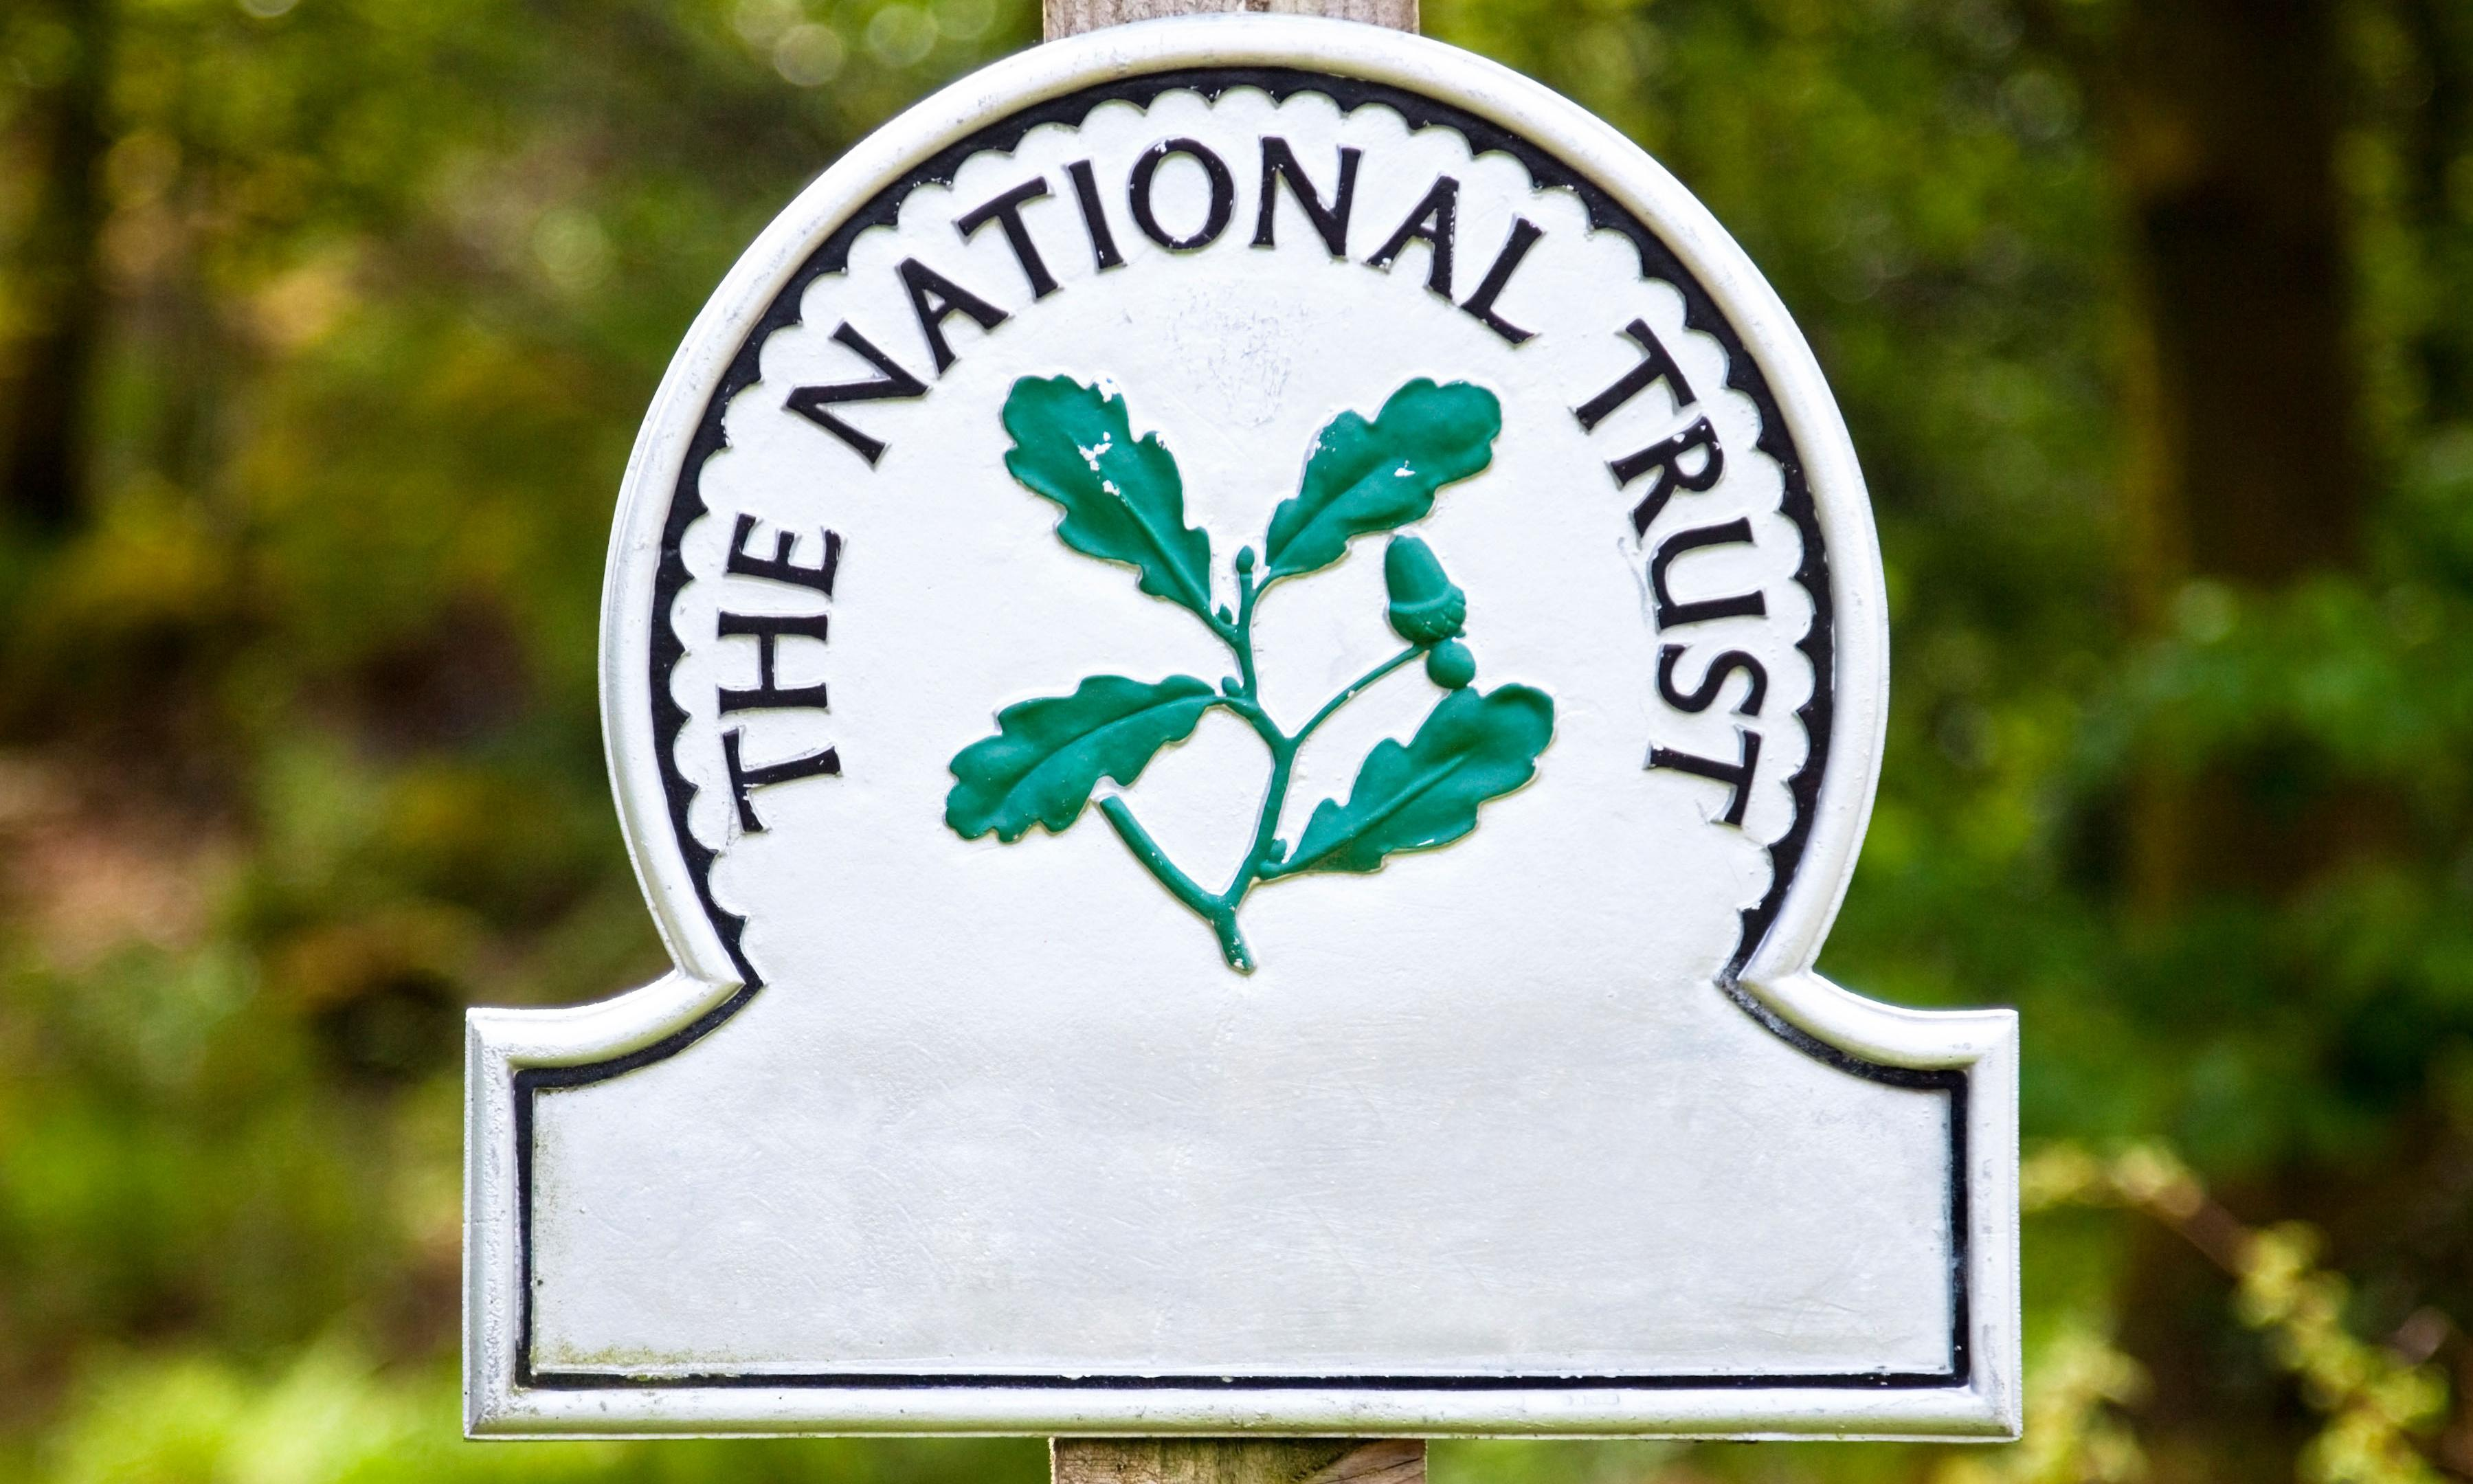 National Trust has £30m invested in fossil fuels